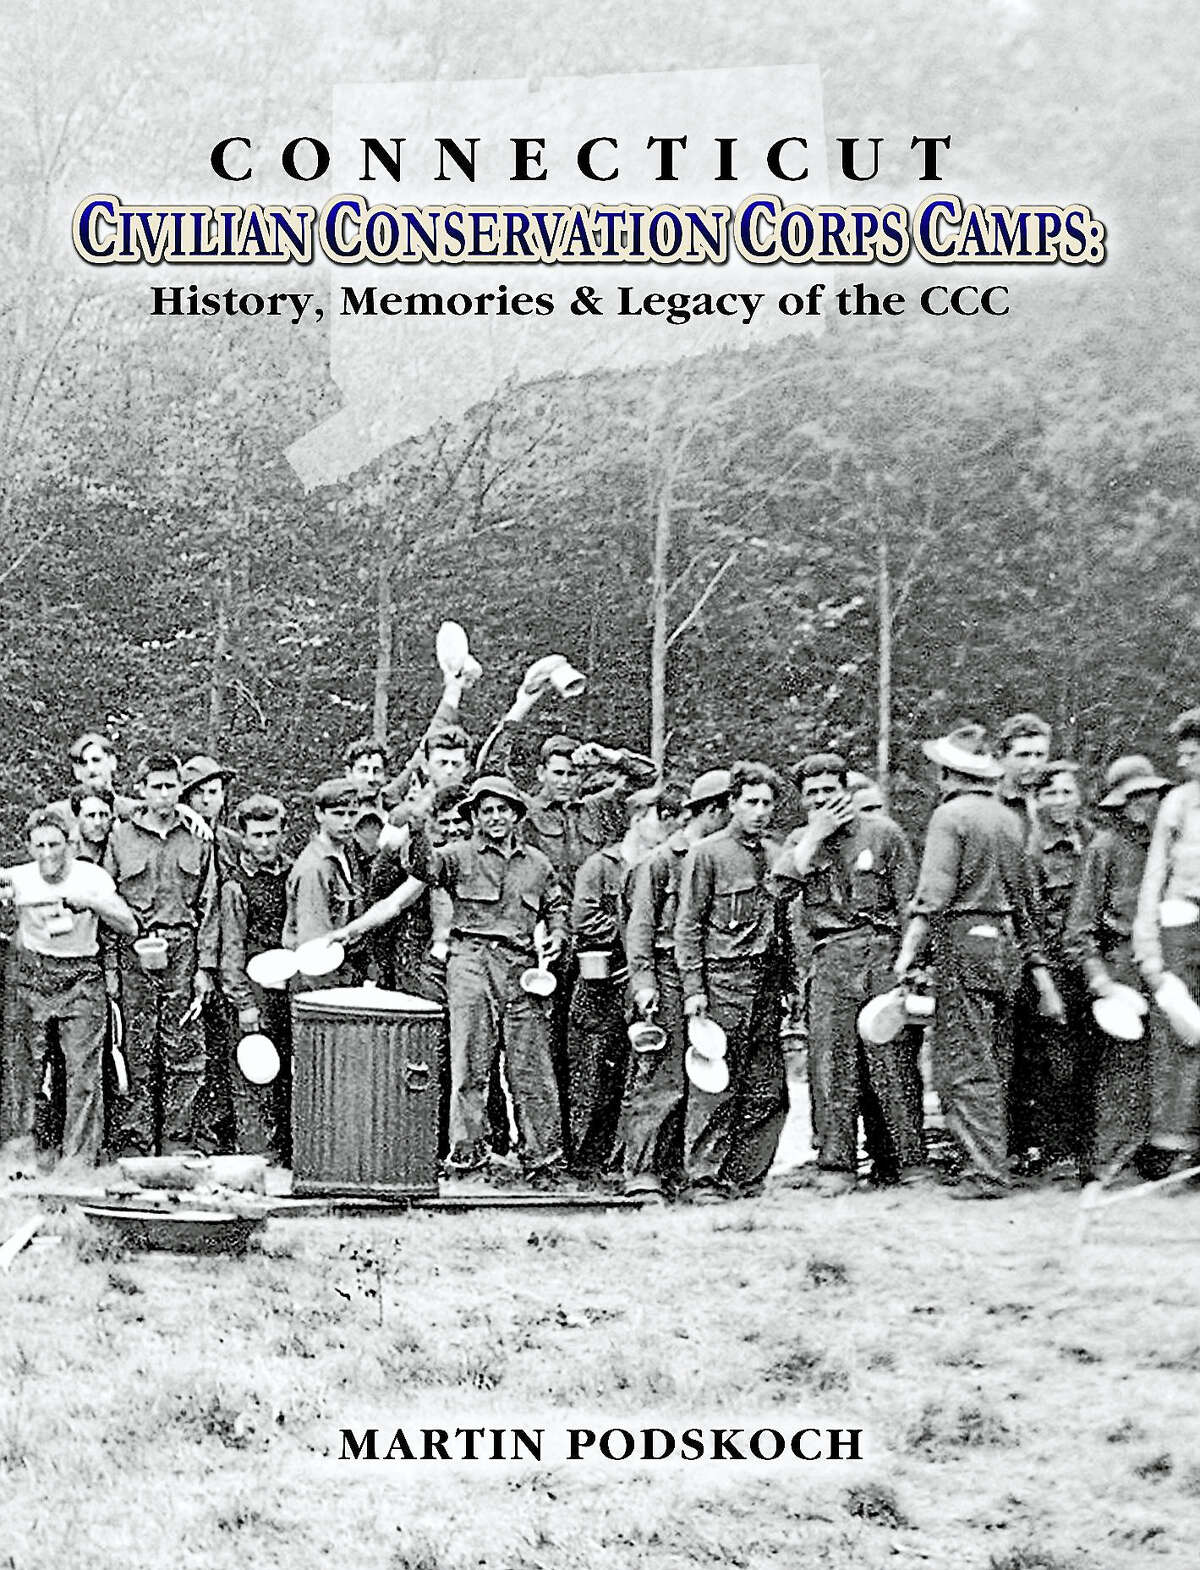 The cover of Connecticut Civilian Conservation Corps Camps: Memories and Legacy of the CCC.